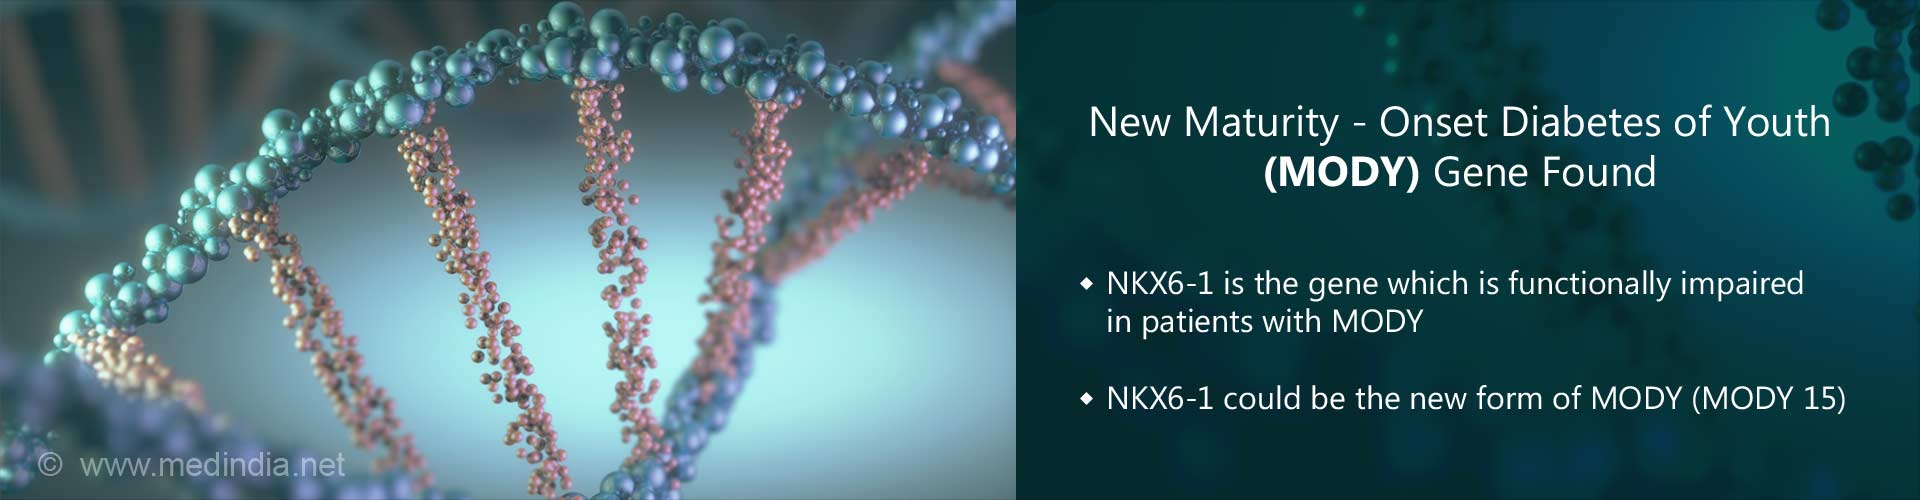 new maturity-onset diabetes of youth (MODY) gene found